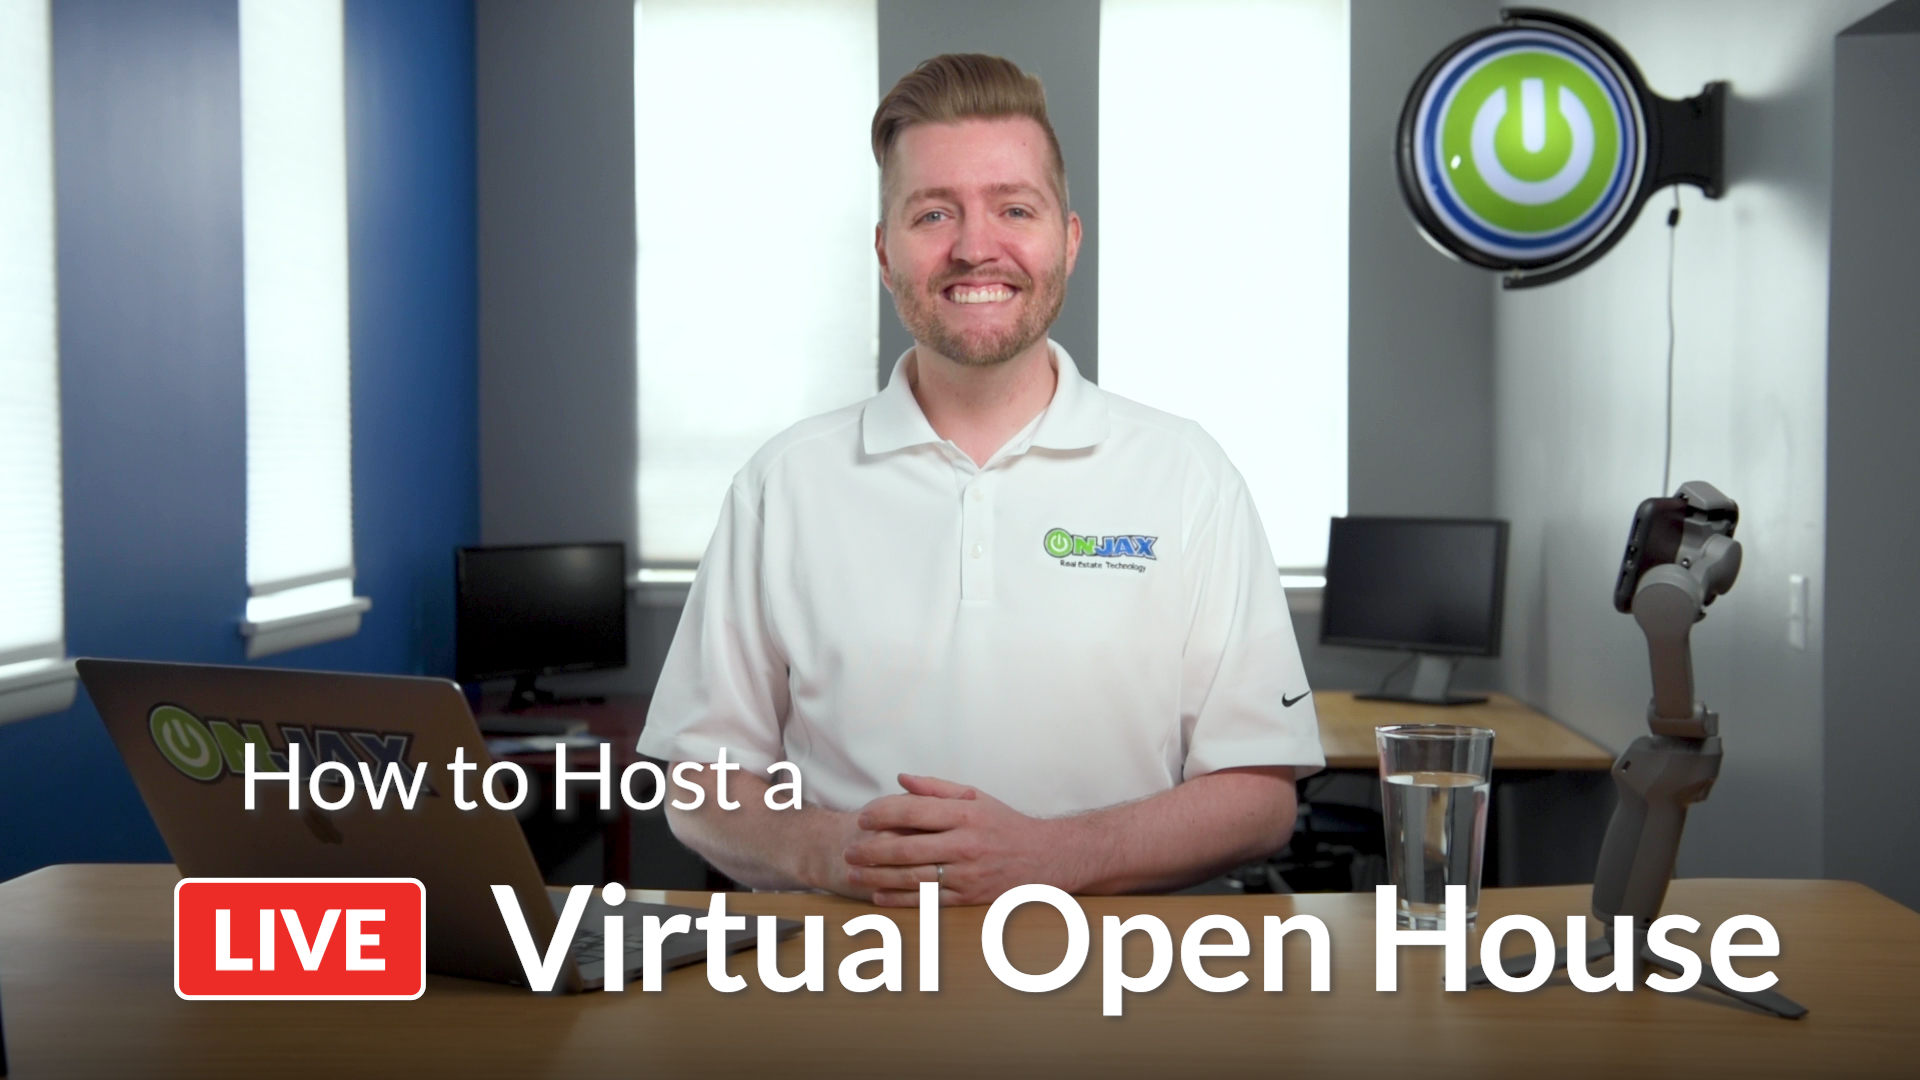 Video on How to Host a Live Virtual Open House